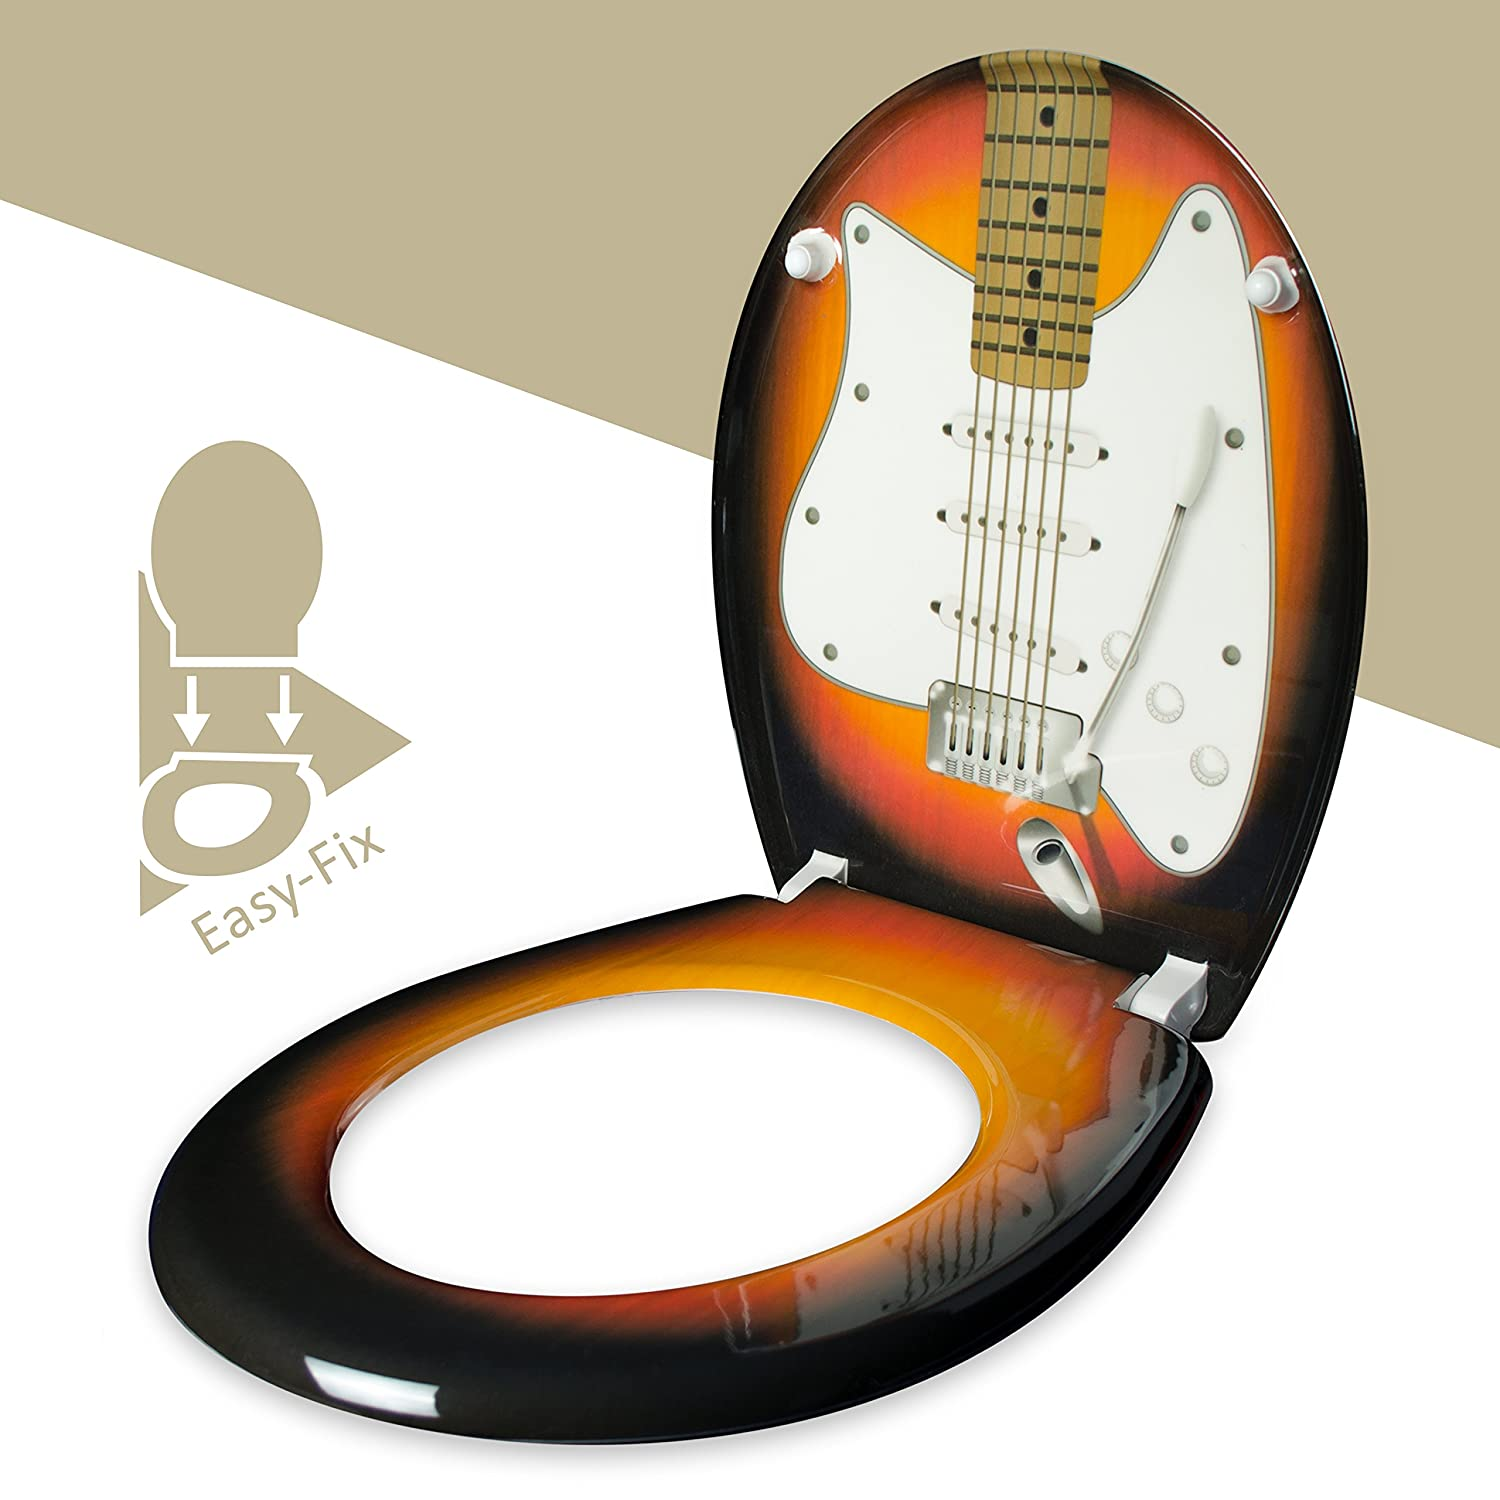 Phenomenal Wc Seat With Slow Close Mechanism Electric Guitar Design Duroplast Toilet Seat With Motif Mounting Kit Grinscard Machost Co Dining Chair Design Ideas Machostcouk